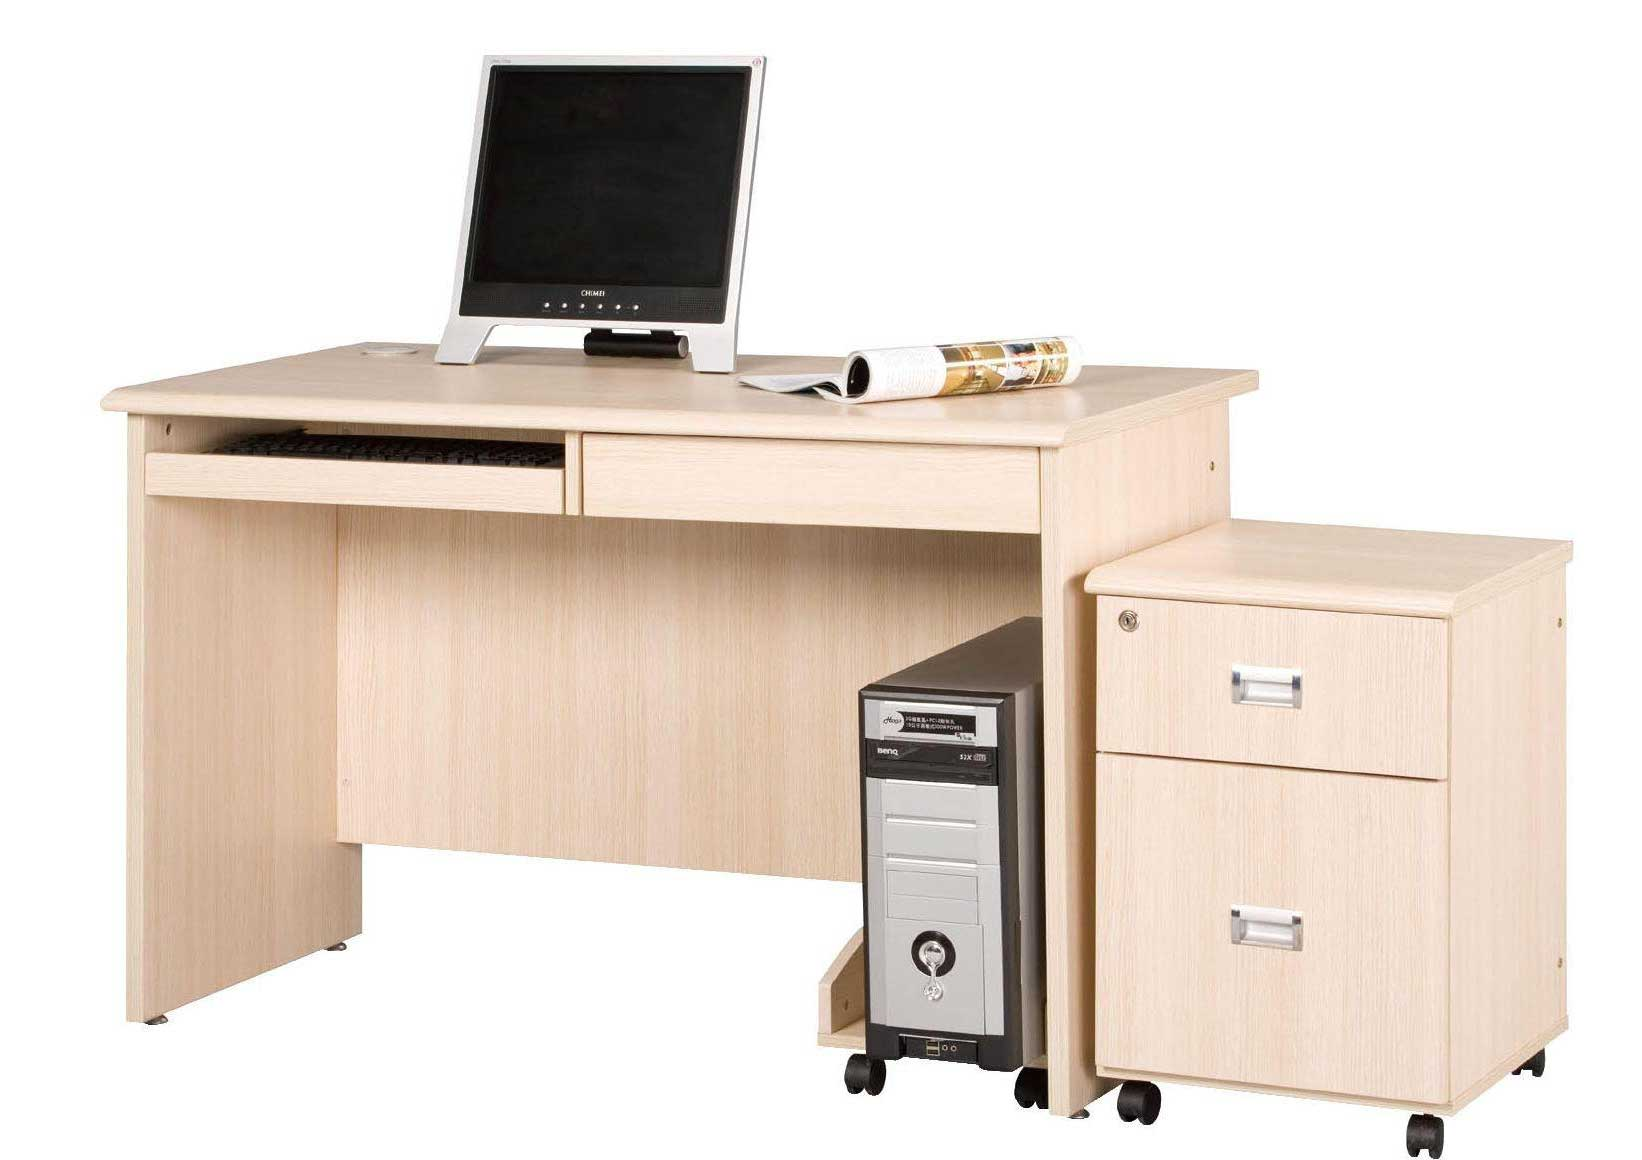 furthermore puter Desk With Storage Cabi. on cinnamon furniture color